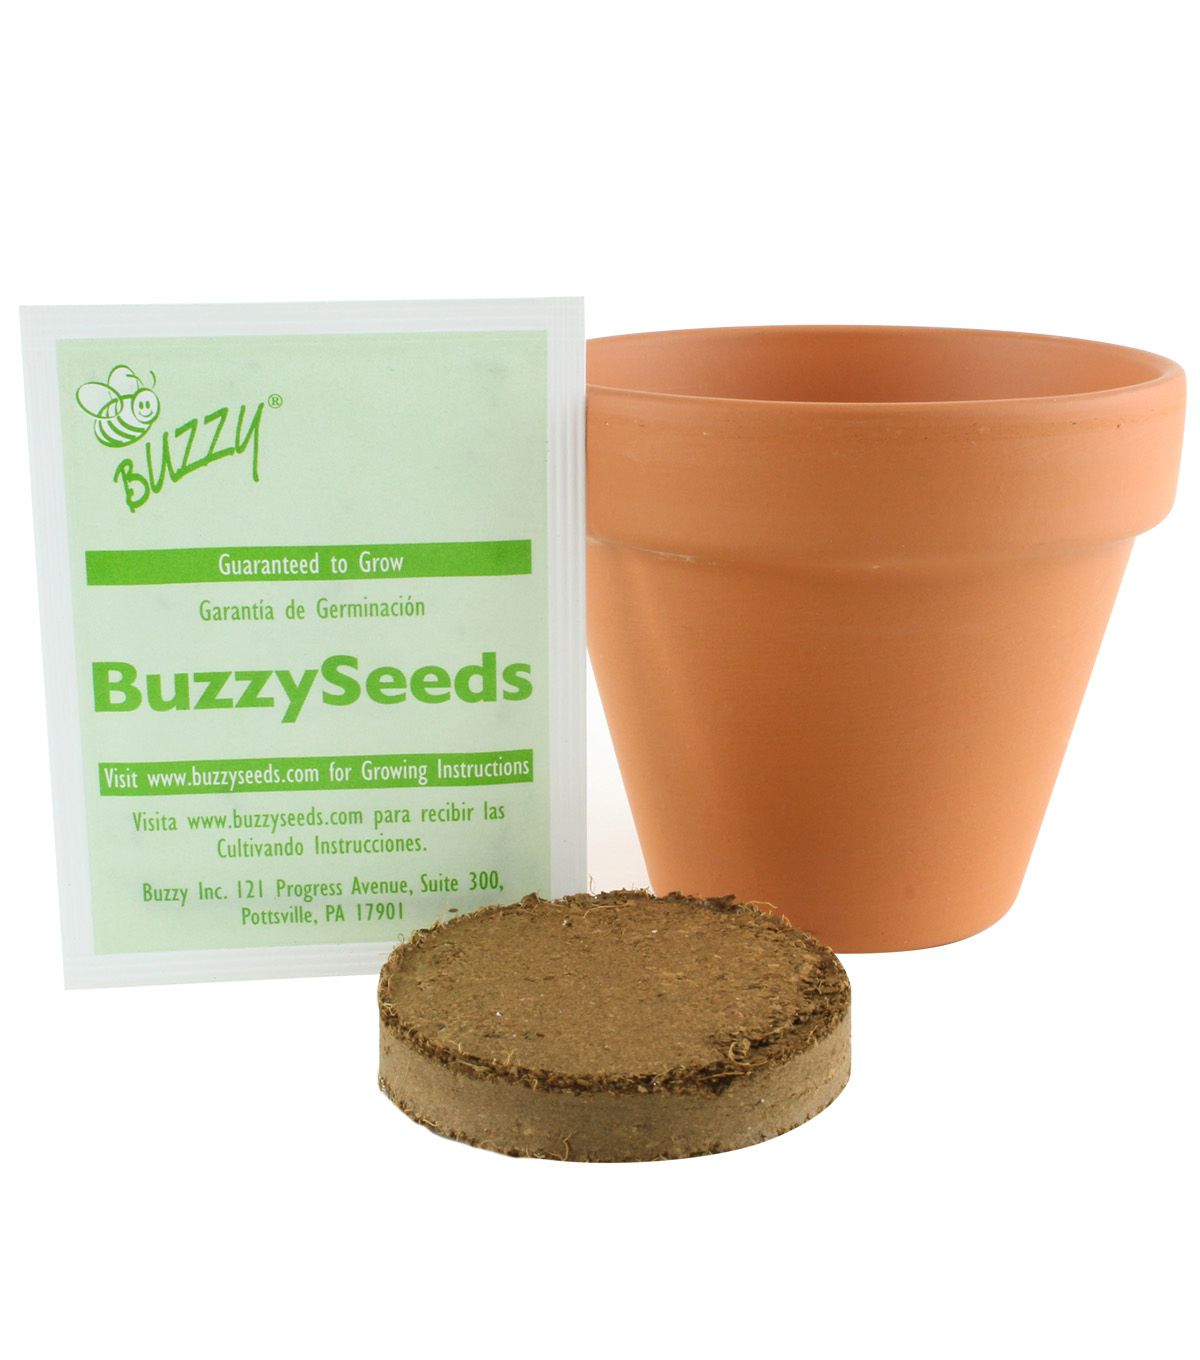 Buzzy Organic Basil Seeds DIY Growing Kit with Terracotta Pot